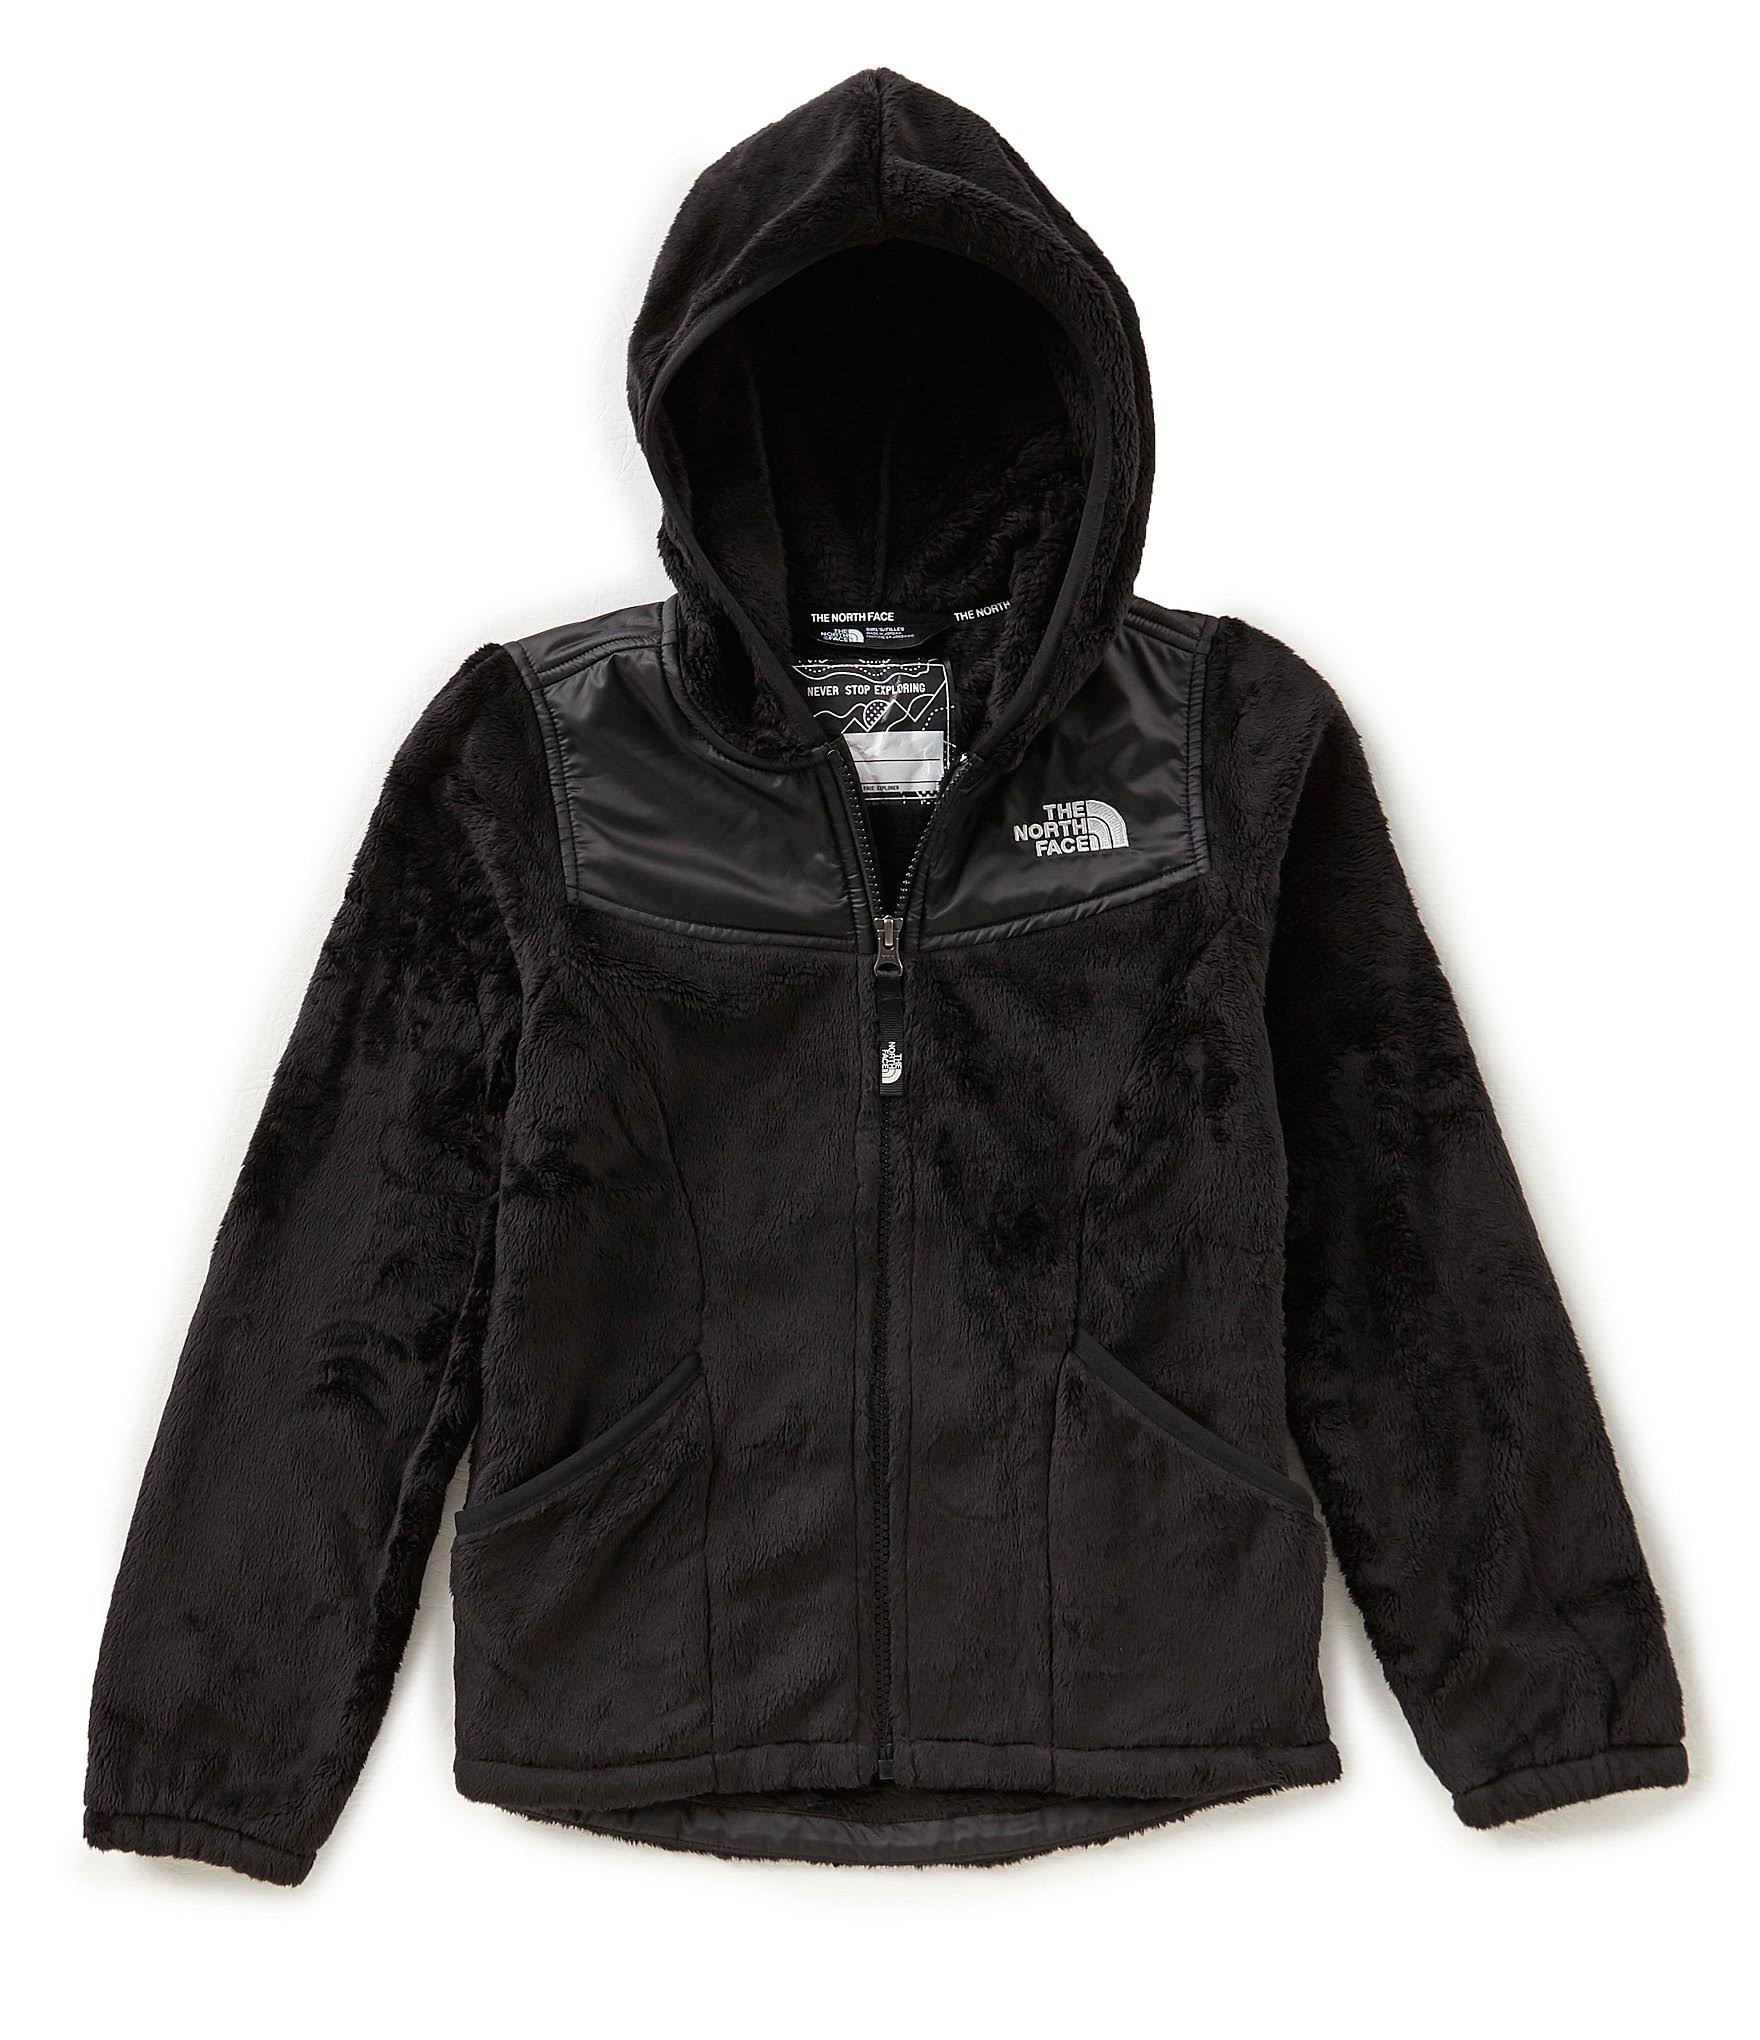 Hoodie Face Oso North Girls Schwarz Xs Kinder The Tnf qOI67nxwS5